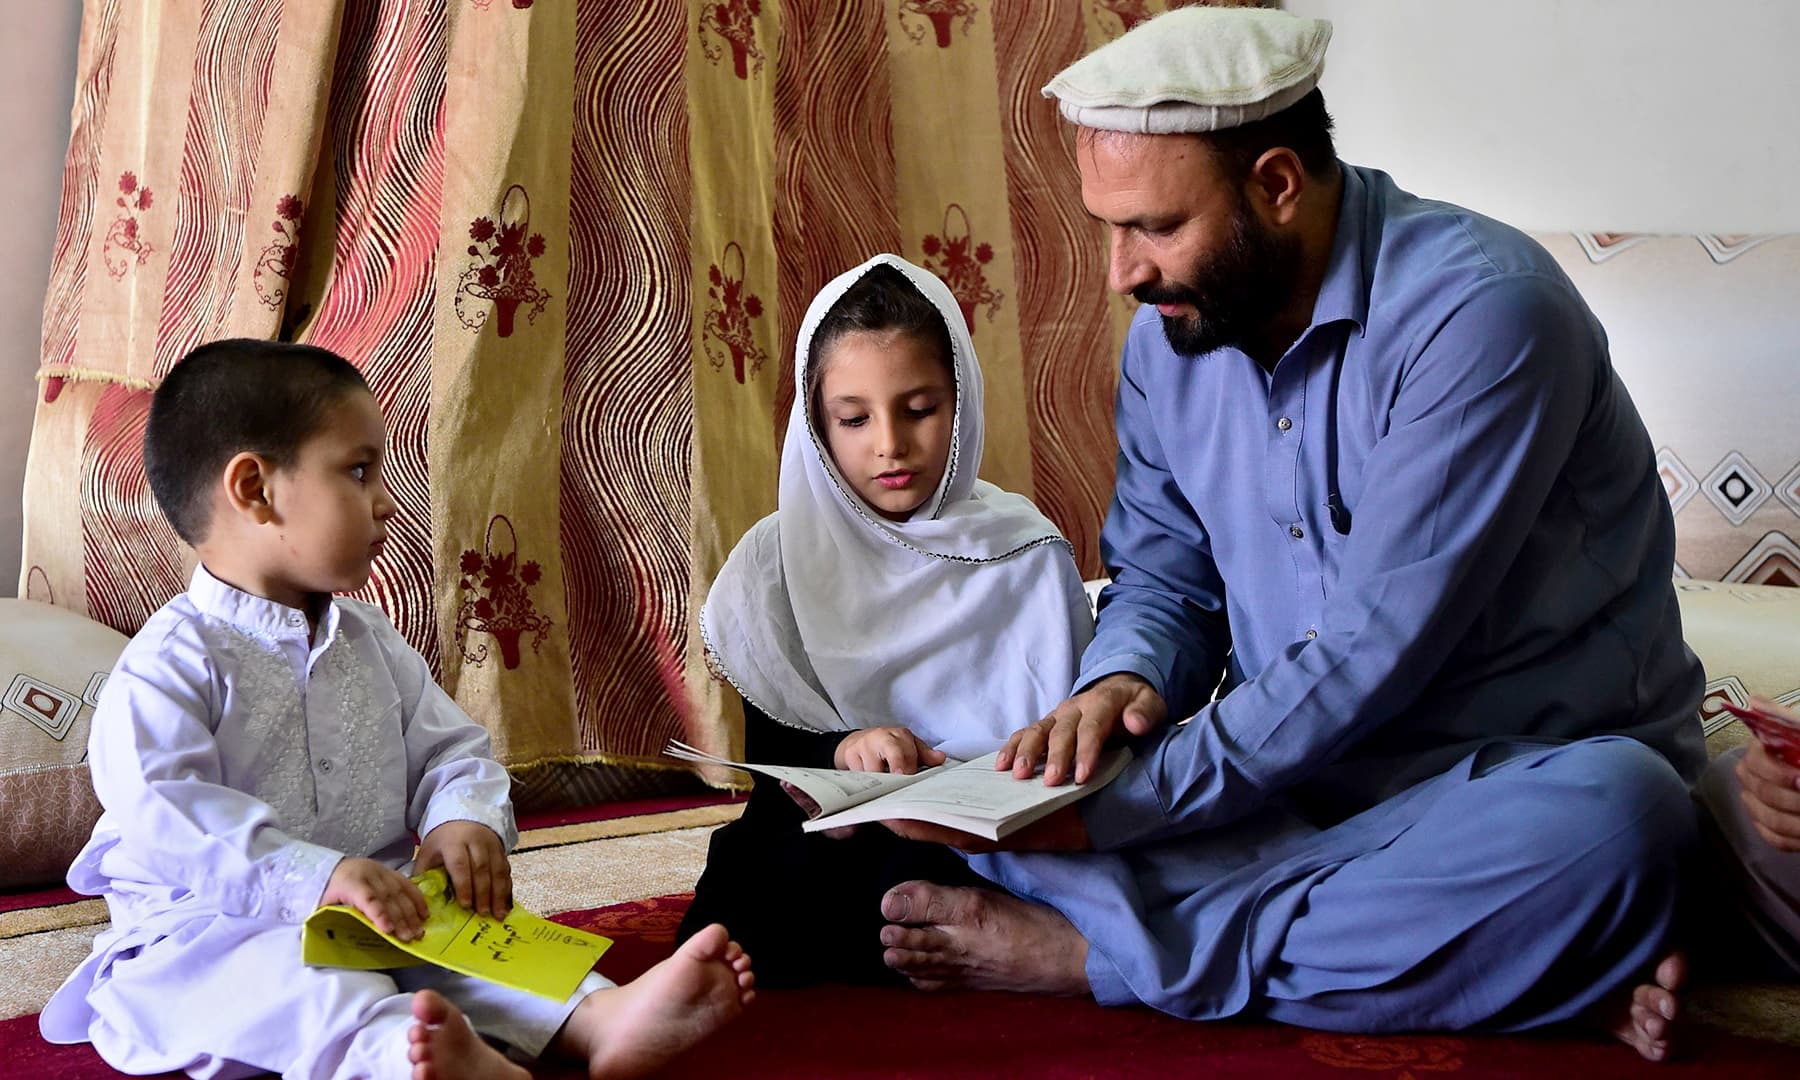 Jan teaches his children at his home in Peshawar. — AFP